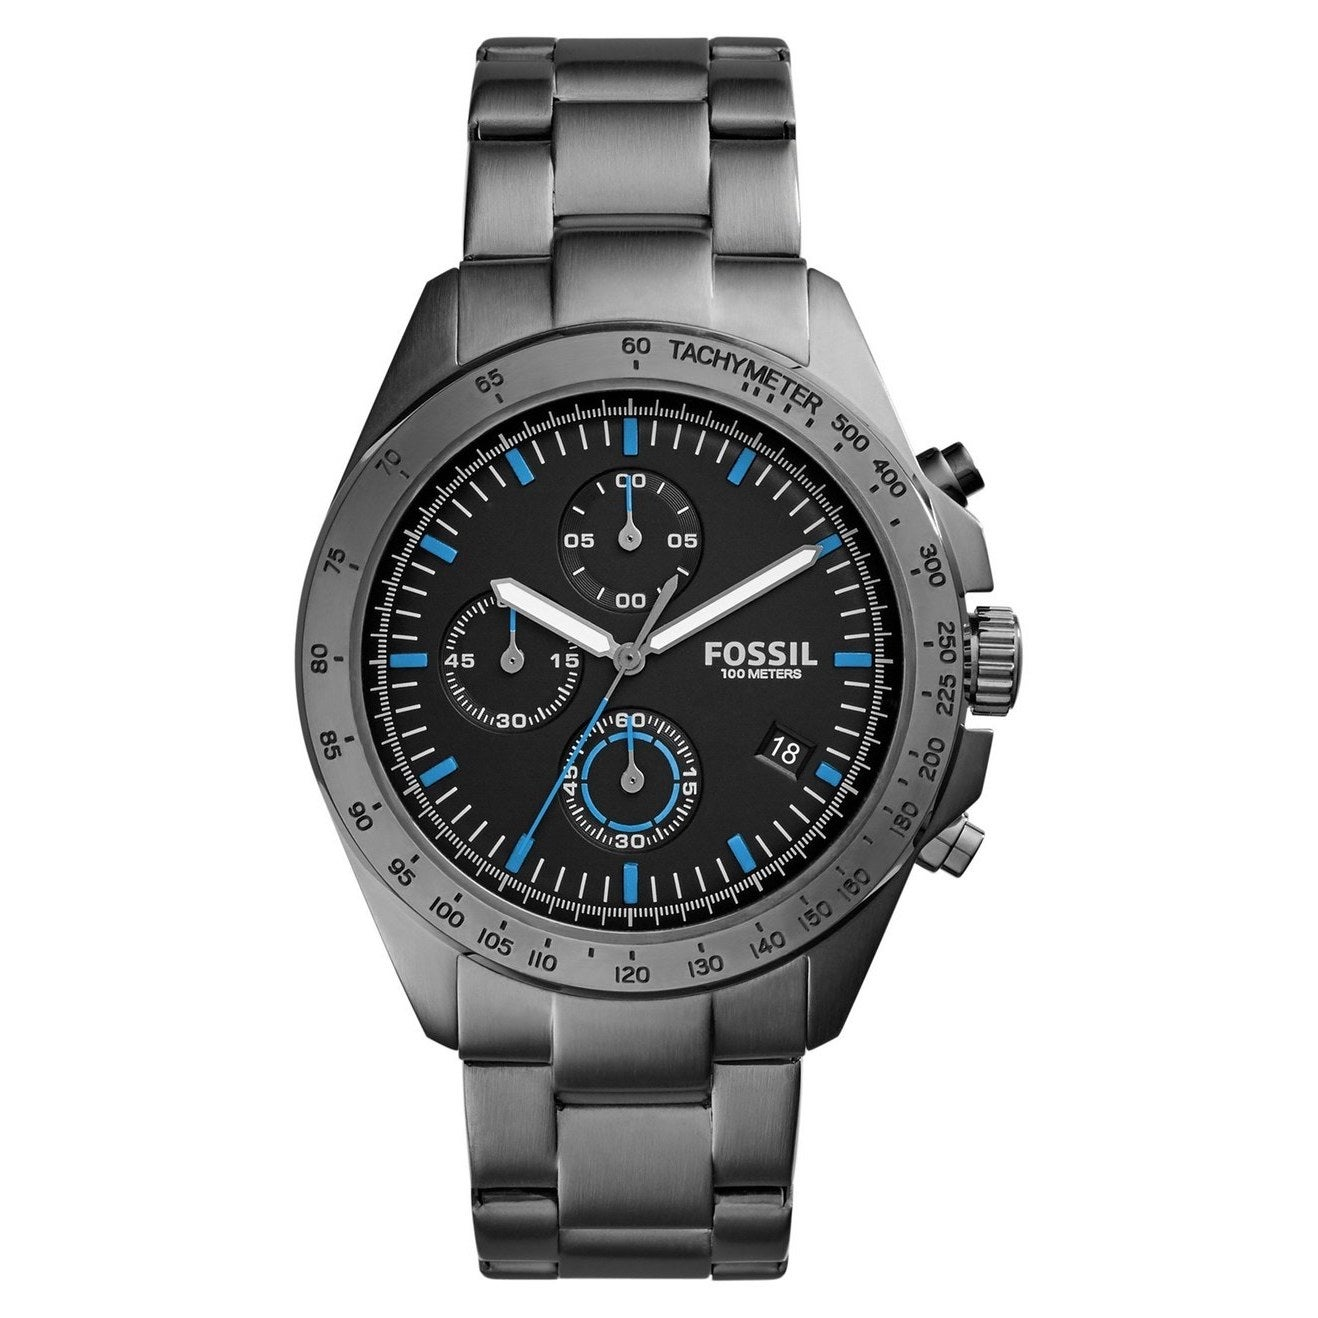 Fossil Men's CH3047 Sport 54 Chronograph Black Dial Grey Stainless Steel Bracelet Watch (CH3047)